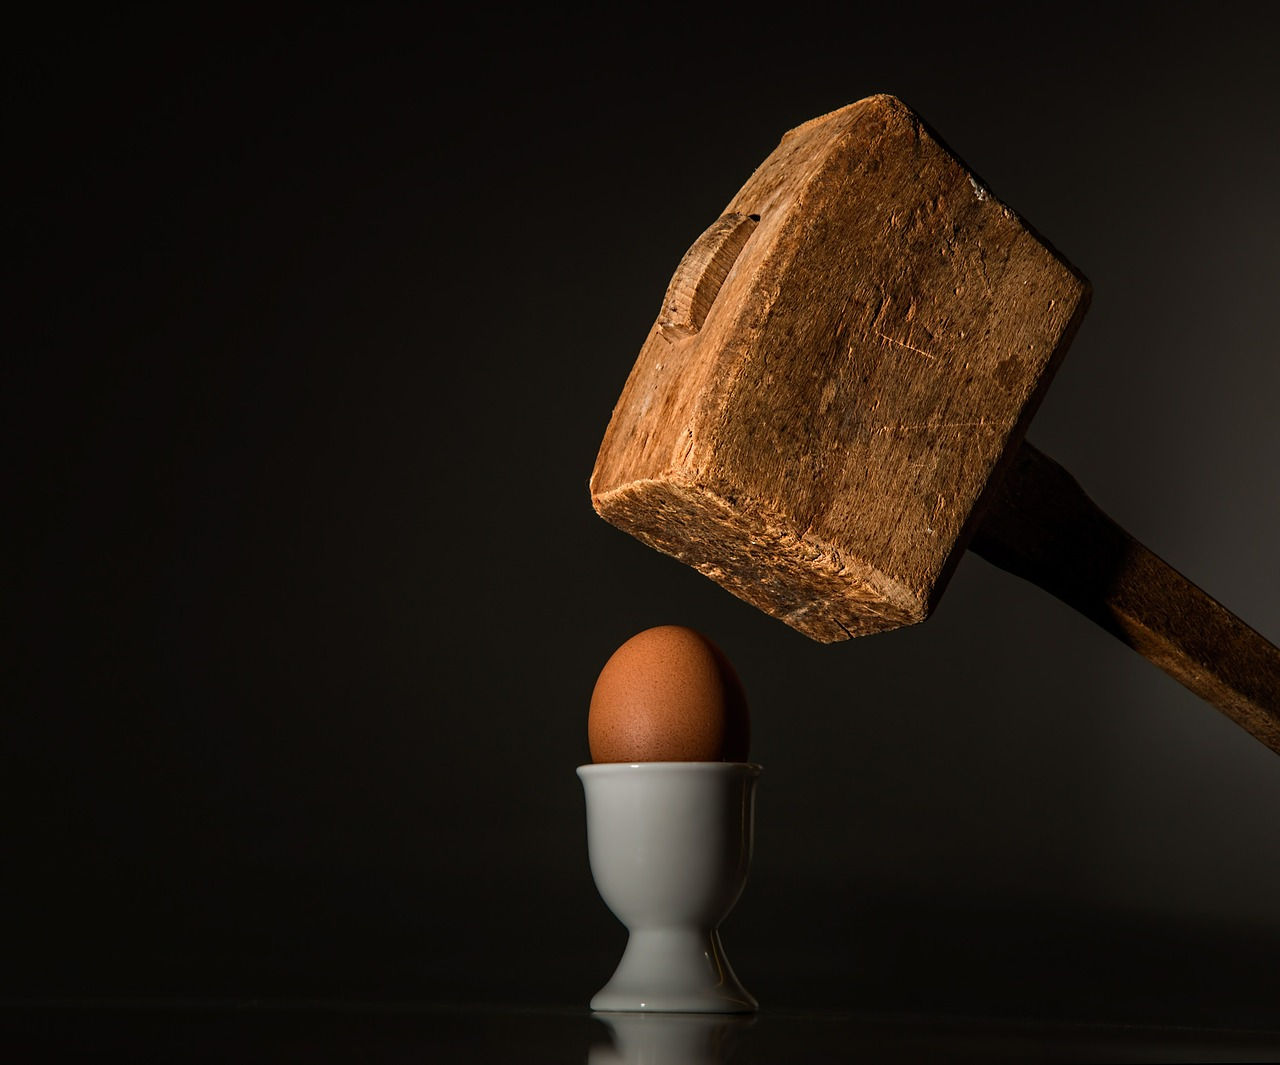 Mallet smshing an egg